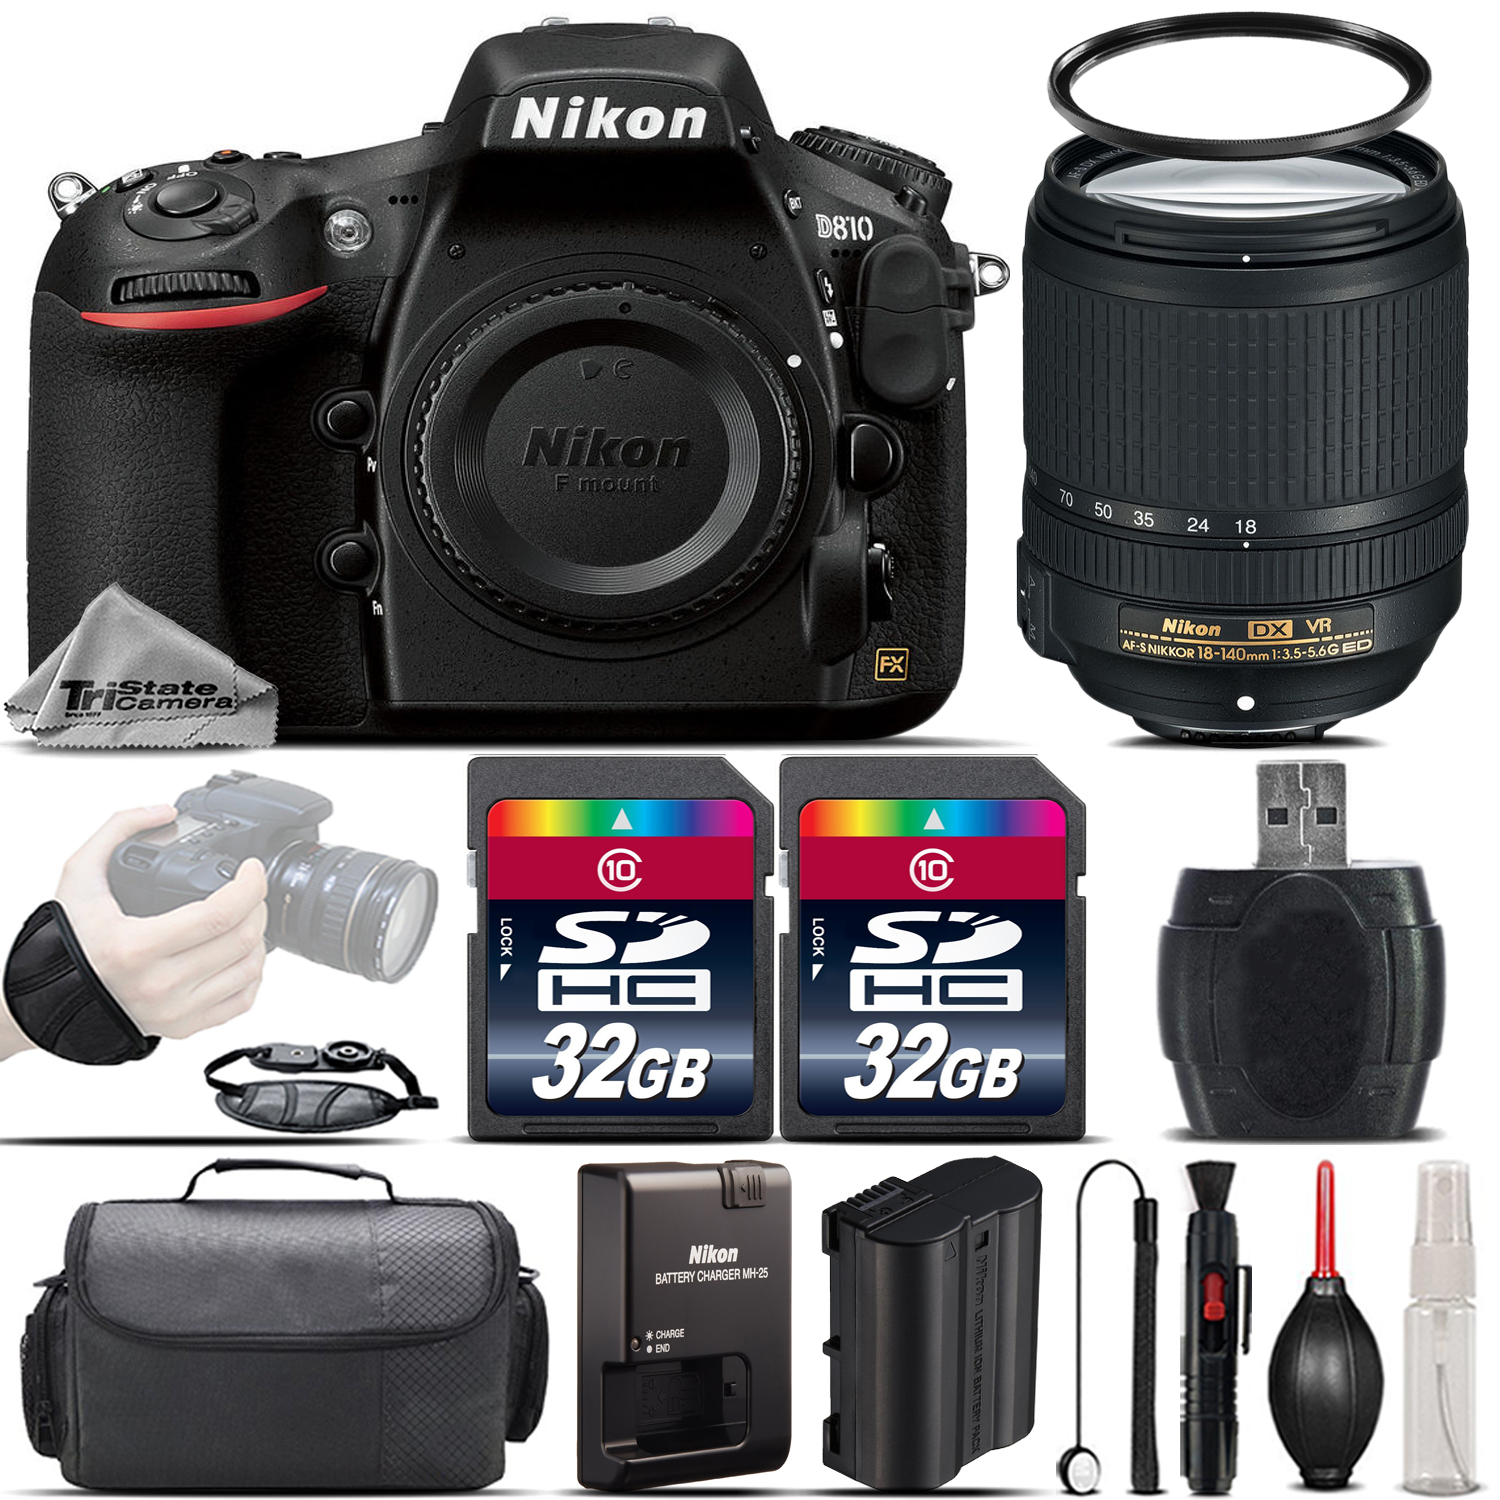 D810 DSLR 36.3MP FX Camera + Nikon 18-140mm VR Lens + Wrist Grip- 64GB Kit *FREE SHIPPING*